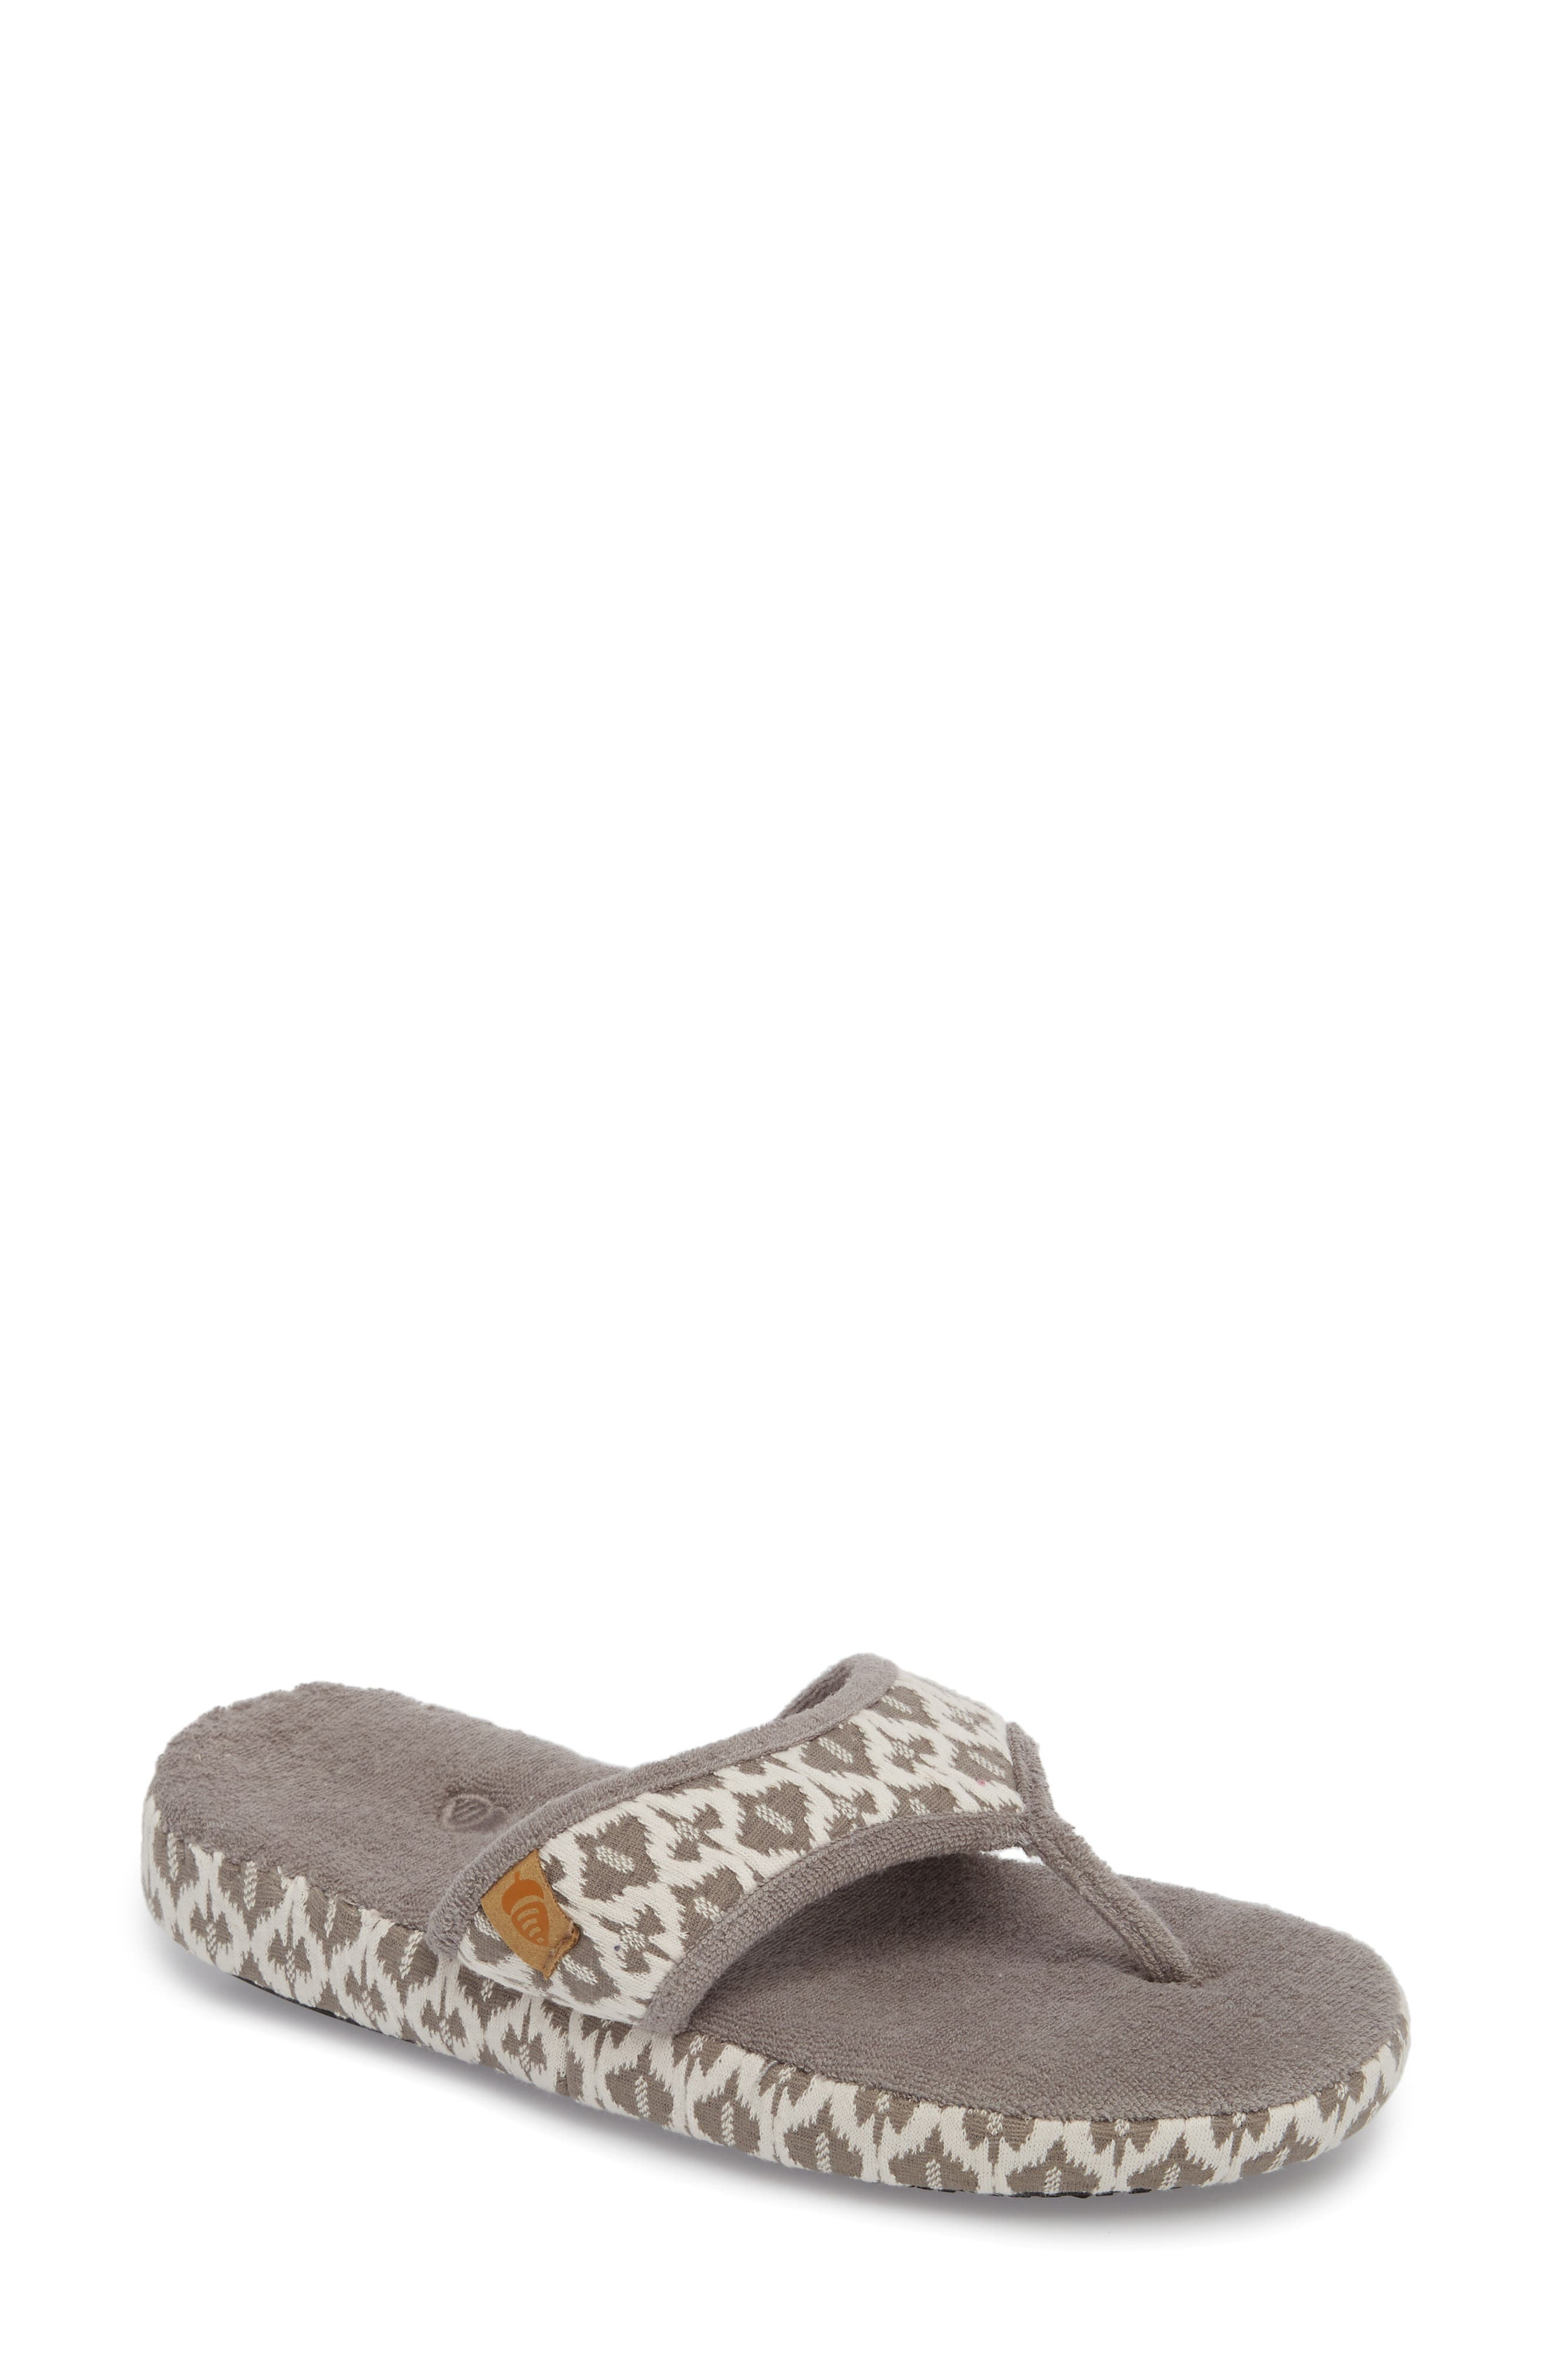 'Summerweight' Slipper,                             Main thumbnail 1, color,                             ASH TRIBAL